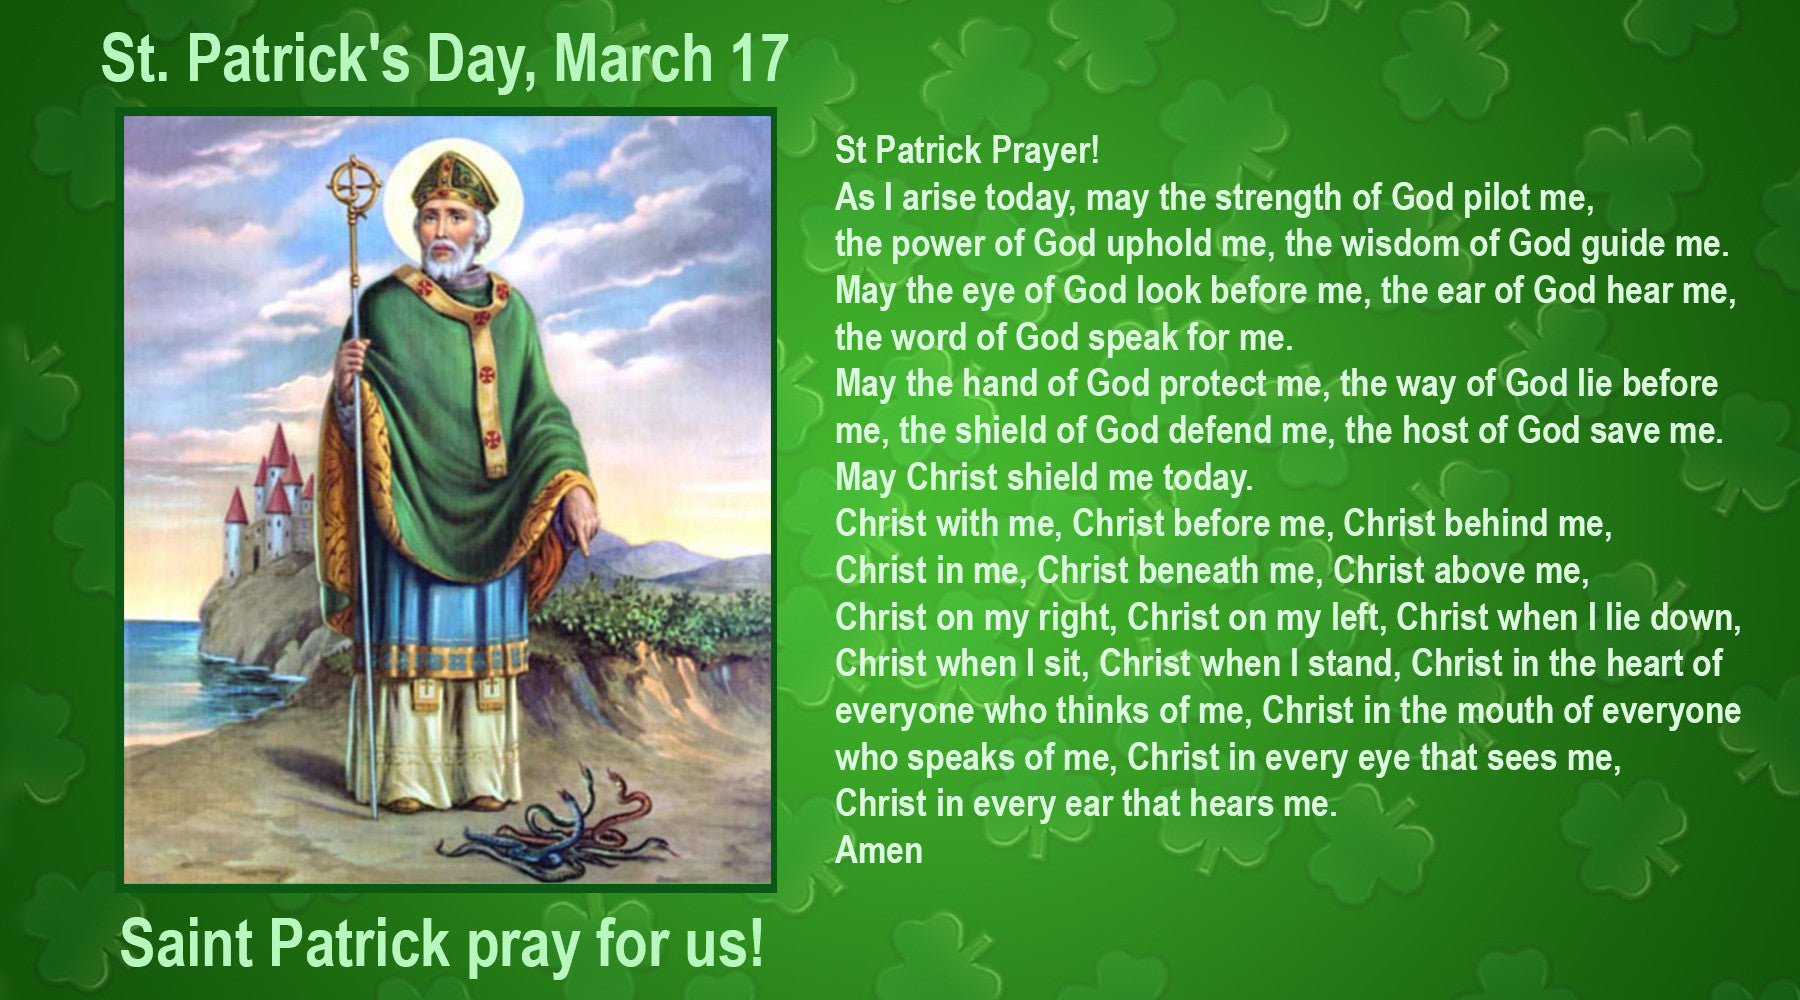 Saint Patrick's Day, March 17, St Patrick Prayer